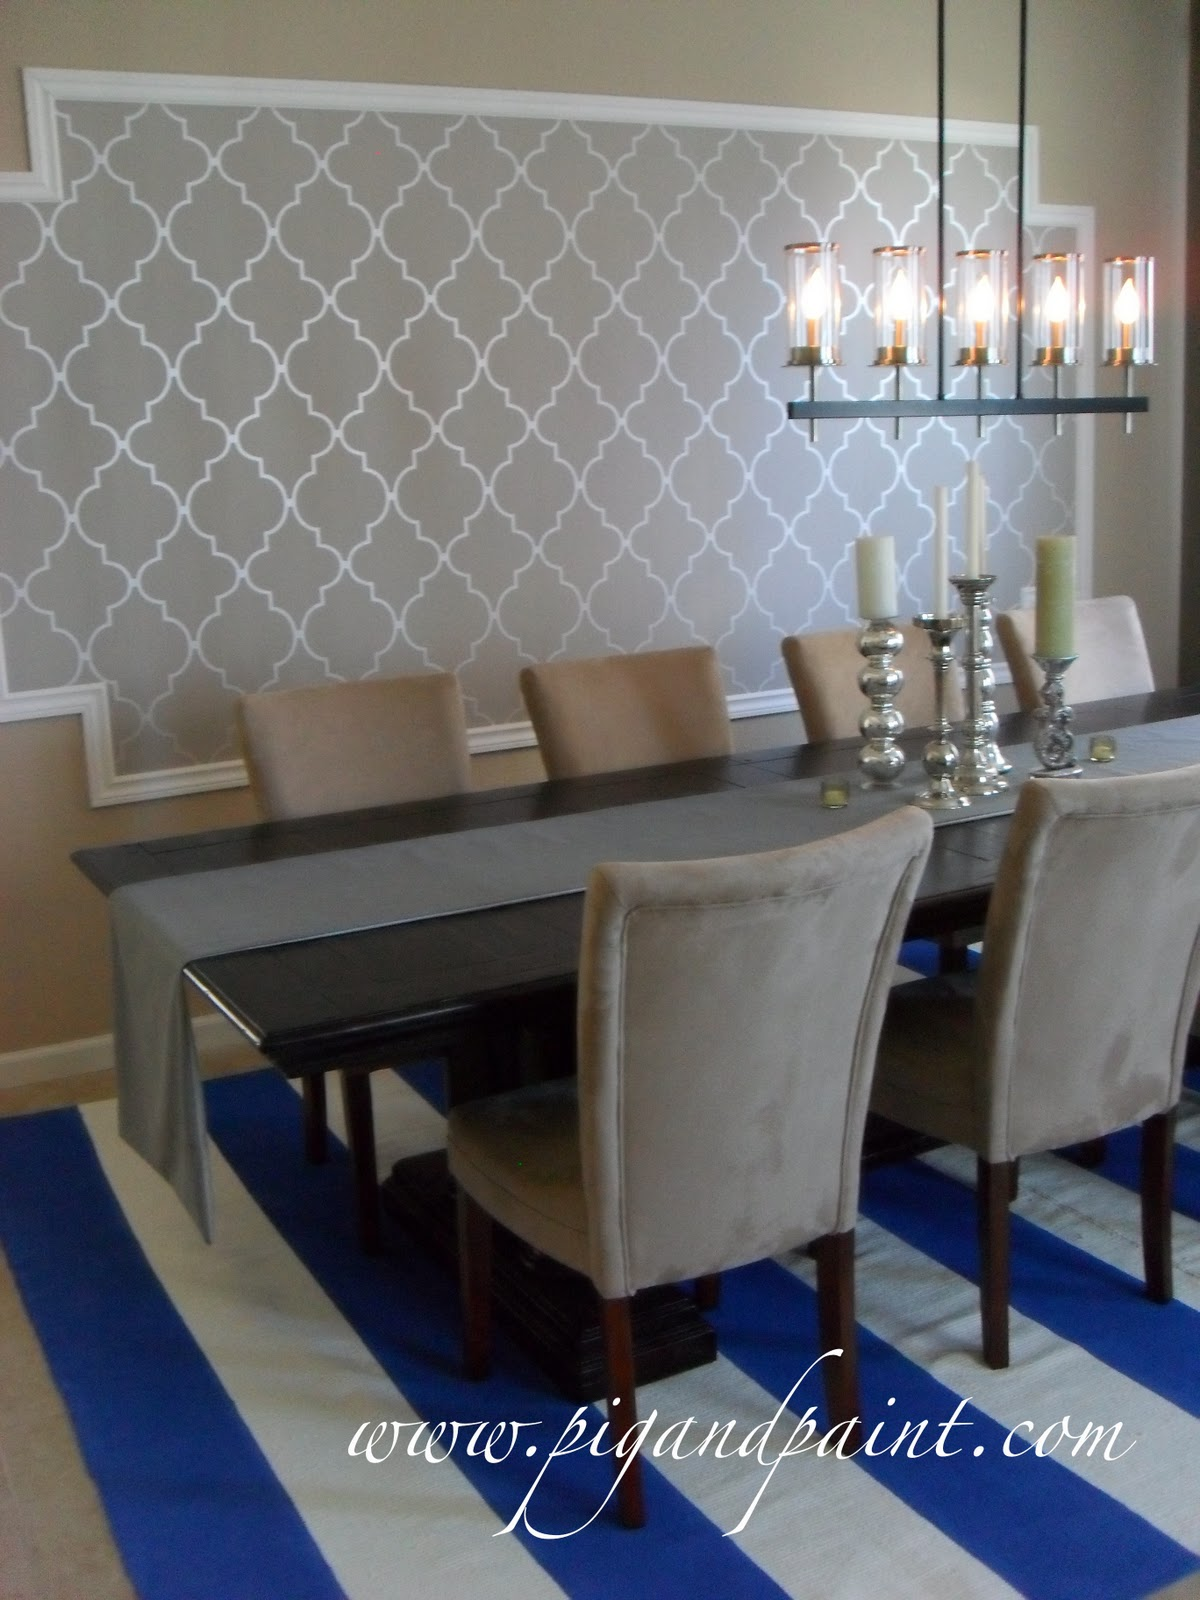 are you thinking about using wallpaper in your home id love to hear about it